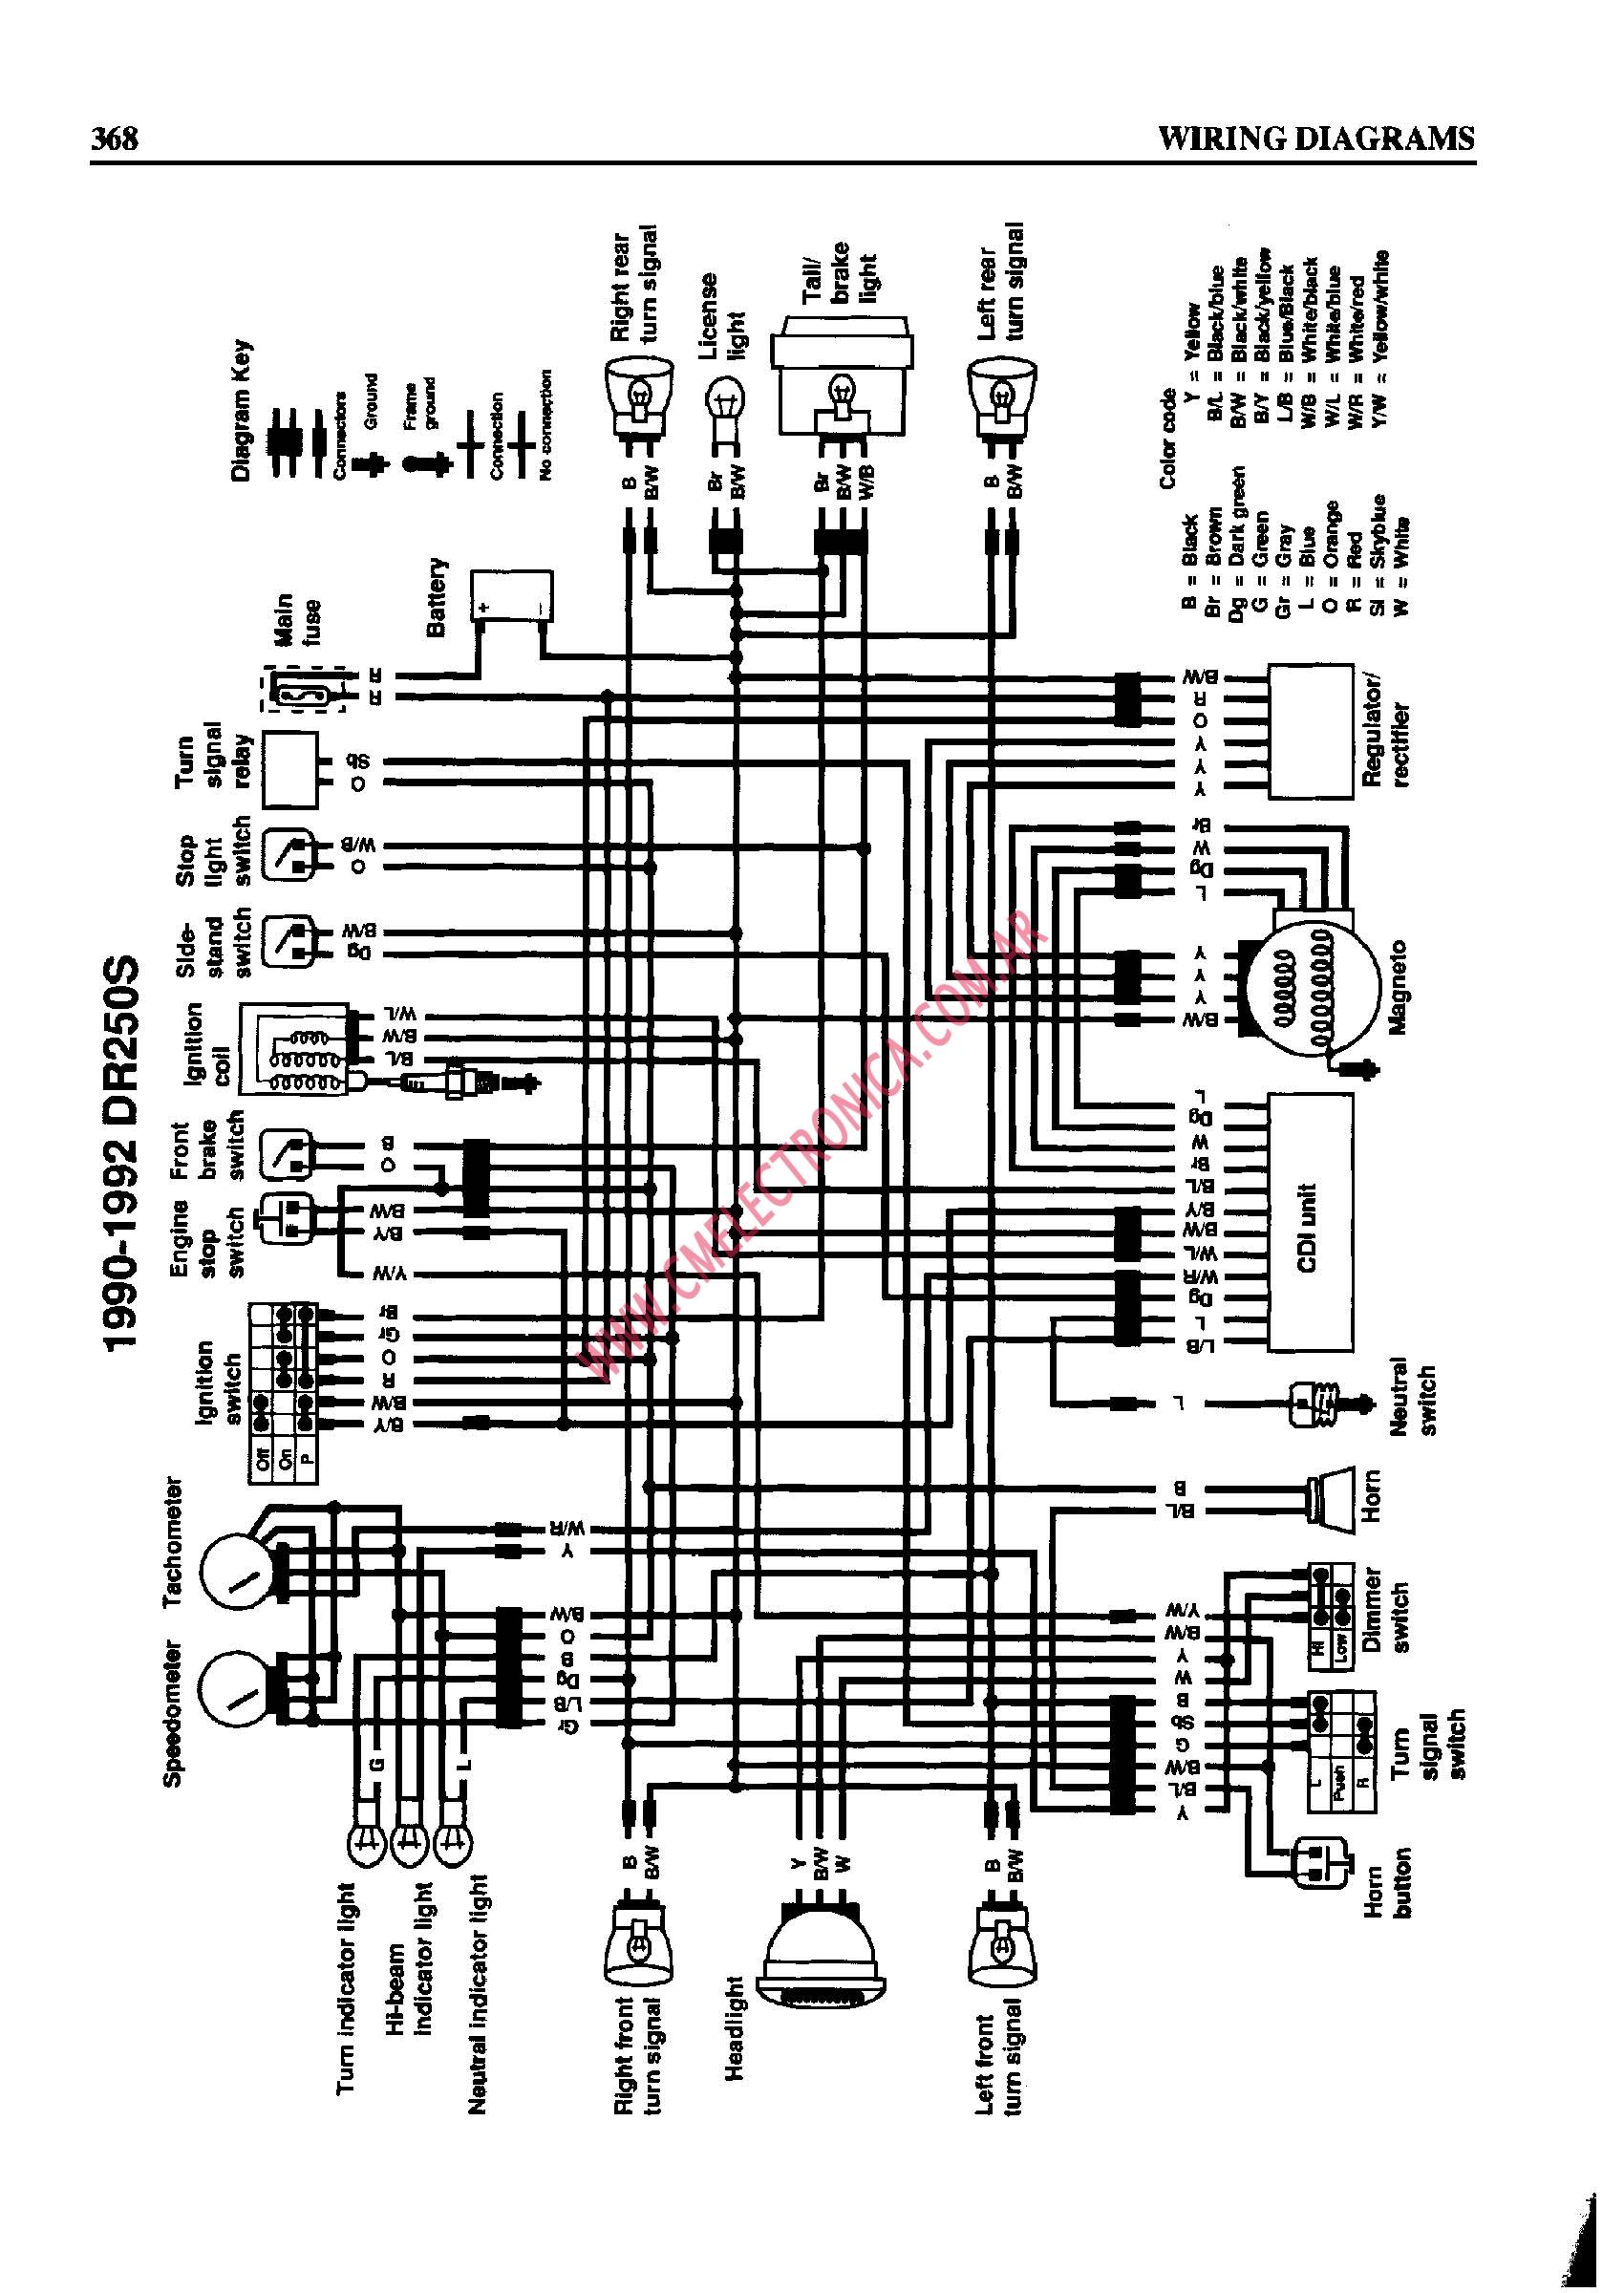 [DIAGRAM] Suzuki Dr 200 Wiring Diagram FULL Version HD